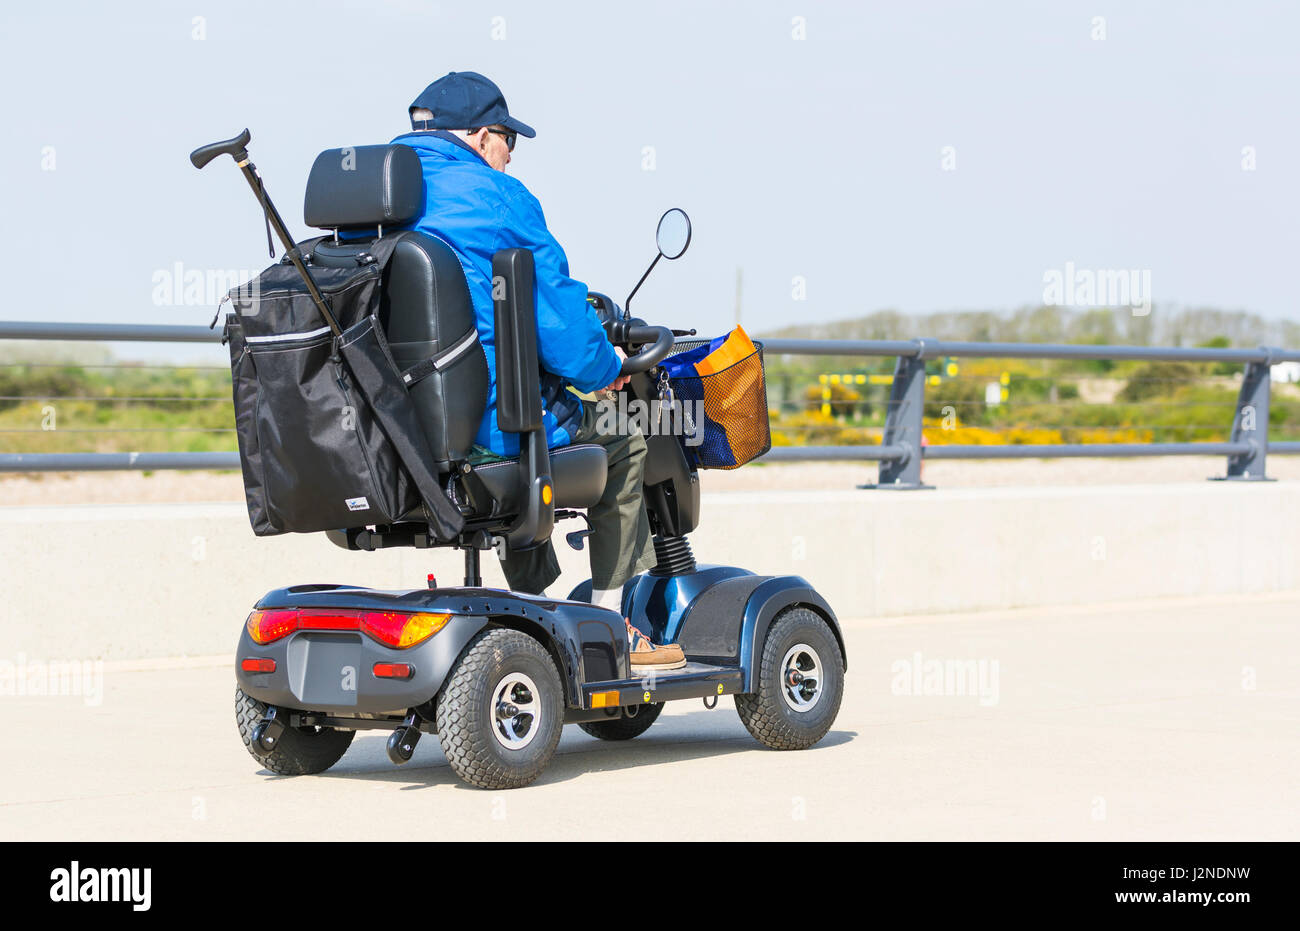 Elderly man on a path in an electric mobility scooter for disabled people. - Stock Image